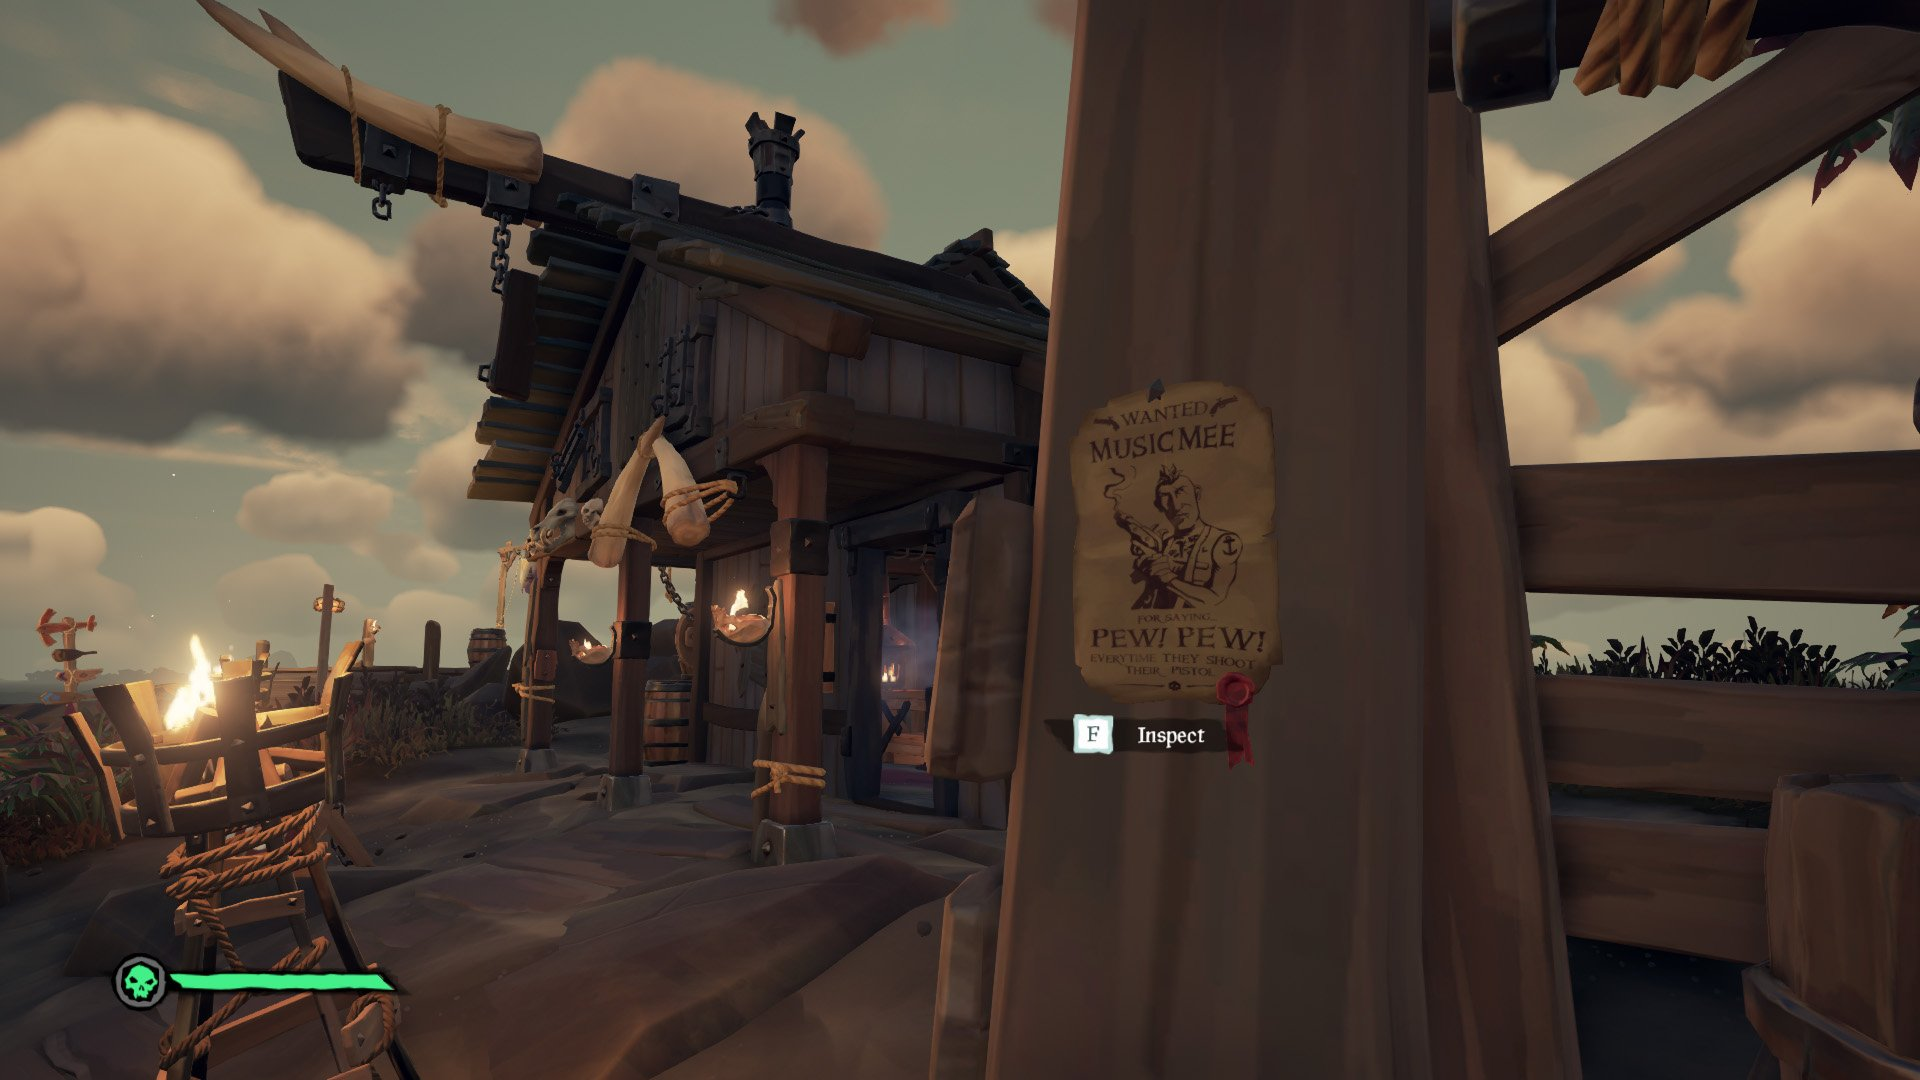 legends of the sea legend locations self-promoting pistol pirate